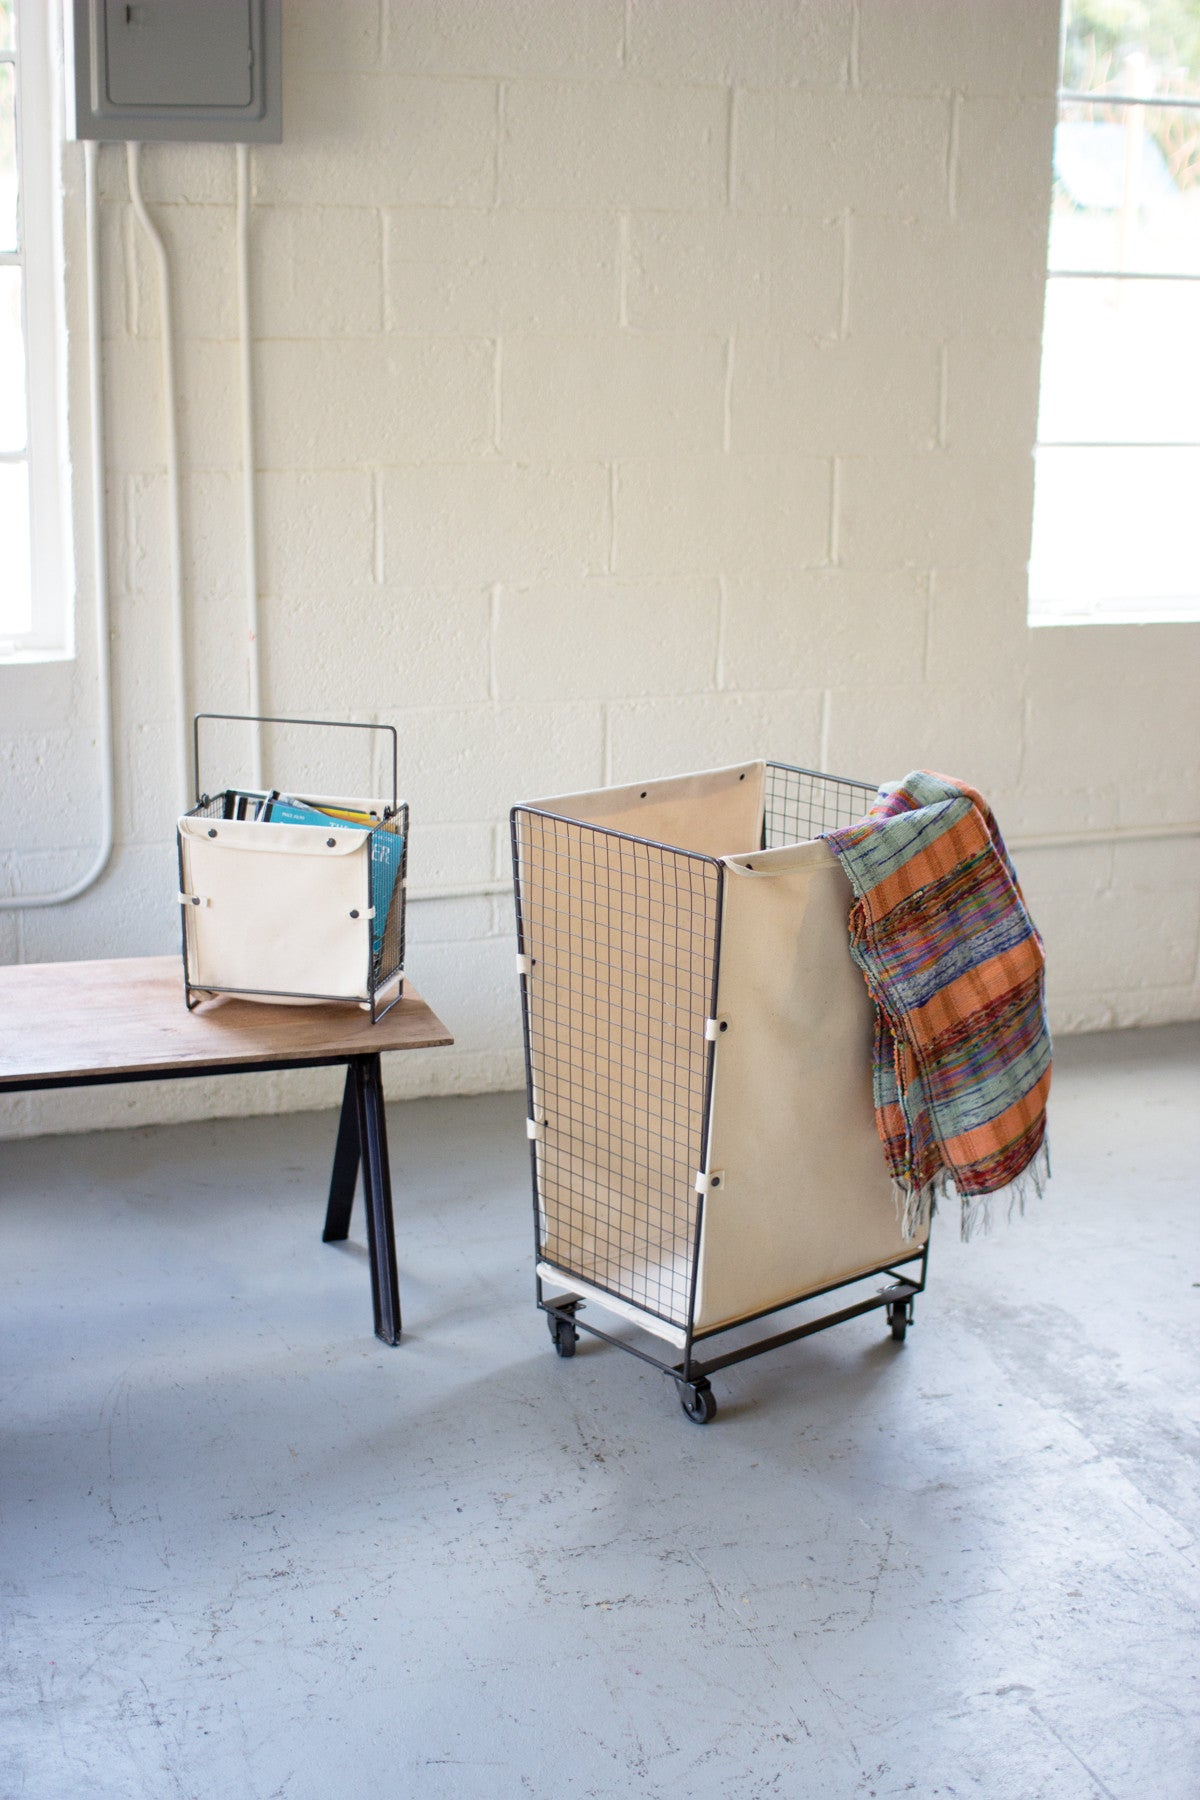 CANVAS AND WIRE HAMPER